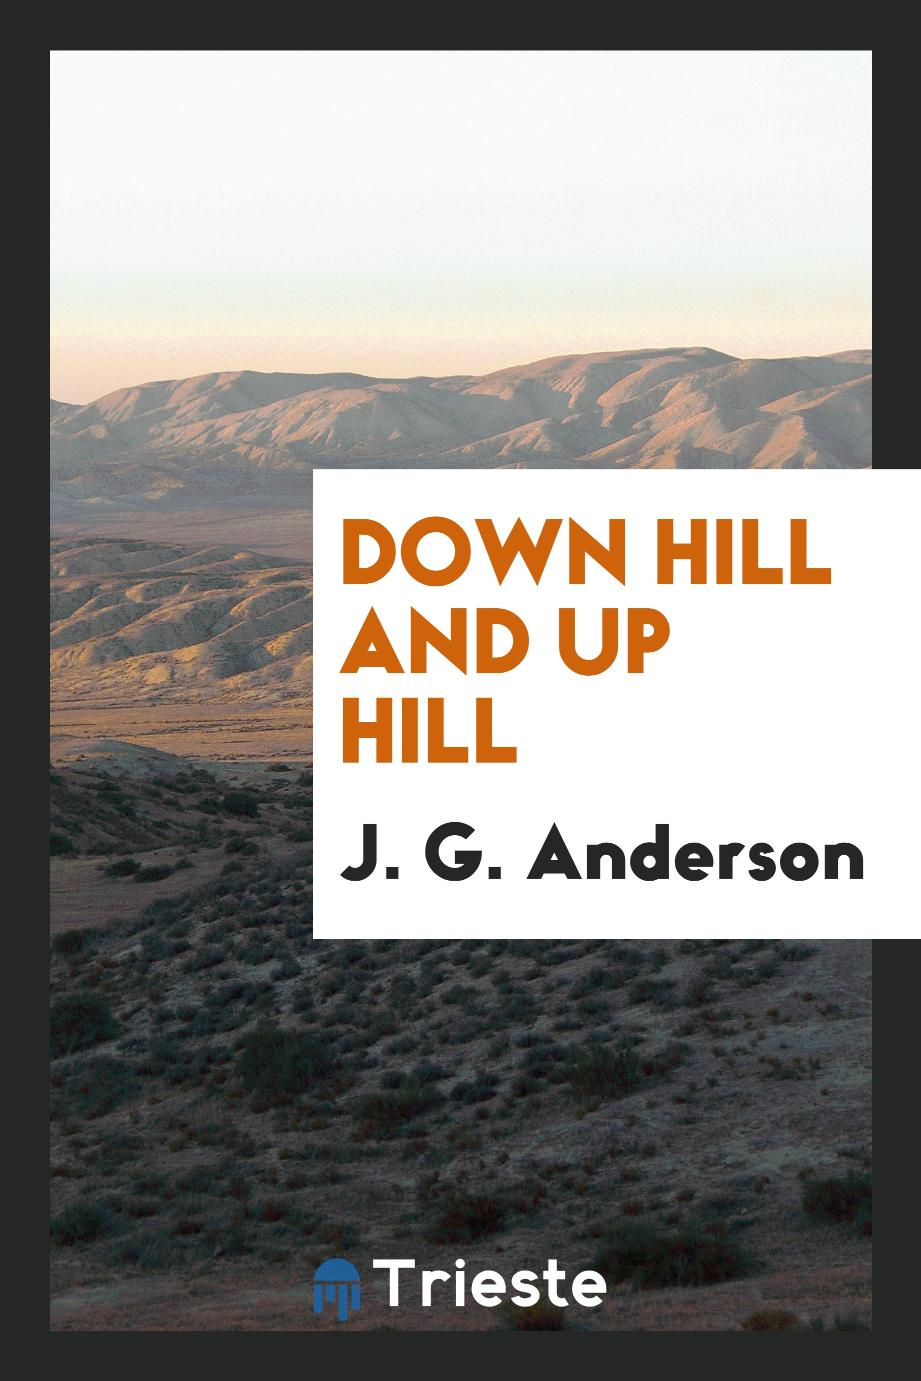 Down Hill and up Hill